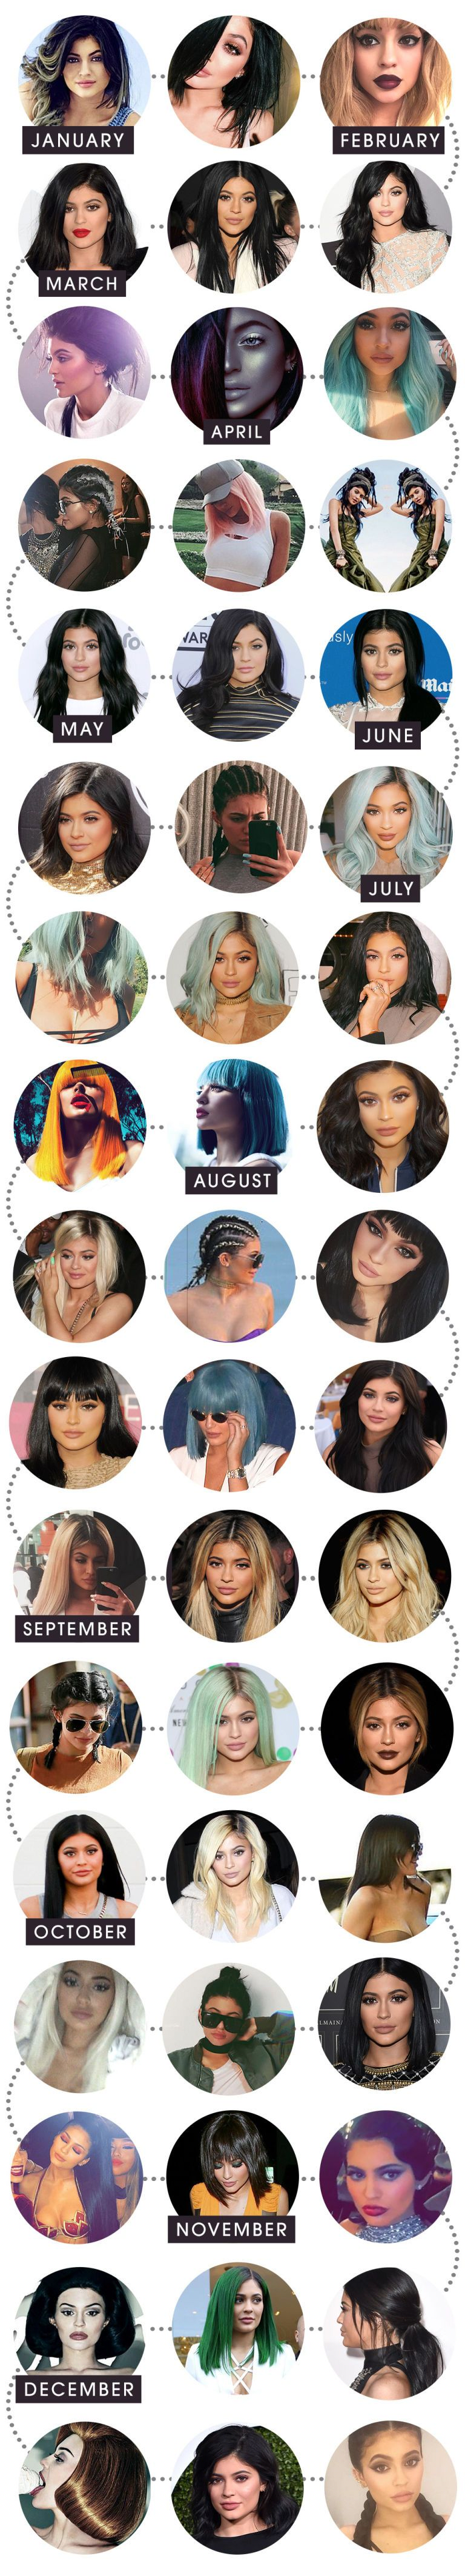 See all of Kylie Jenner's wildest hair colors from 2015: